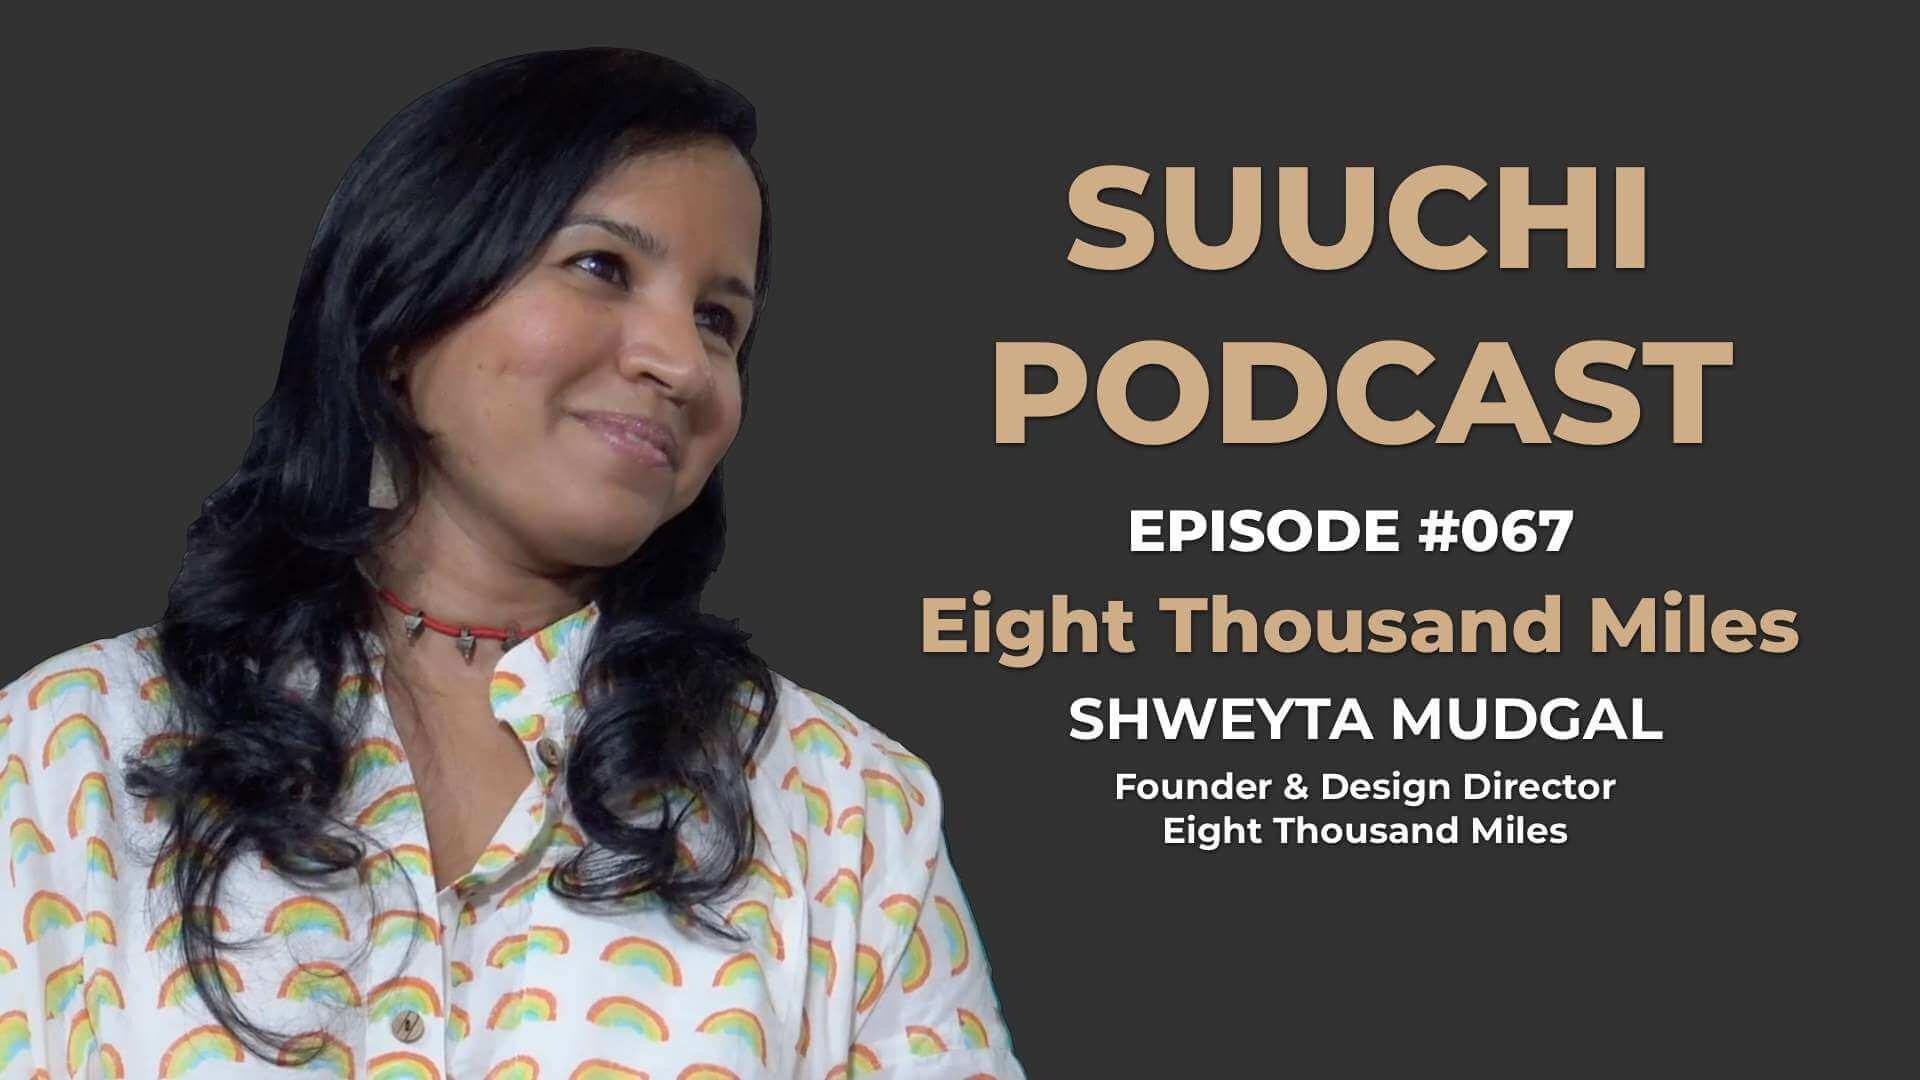 Suuchi Podcast #67: Shweyta Mudgal - Eight Thousand Miles